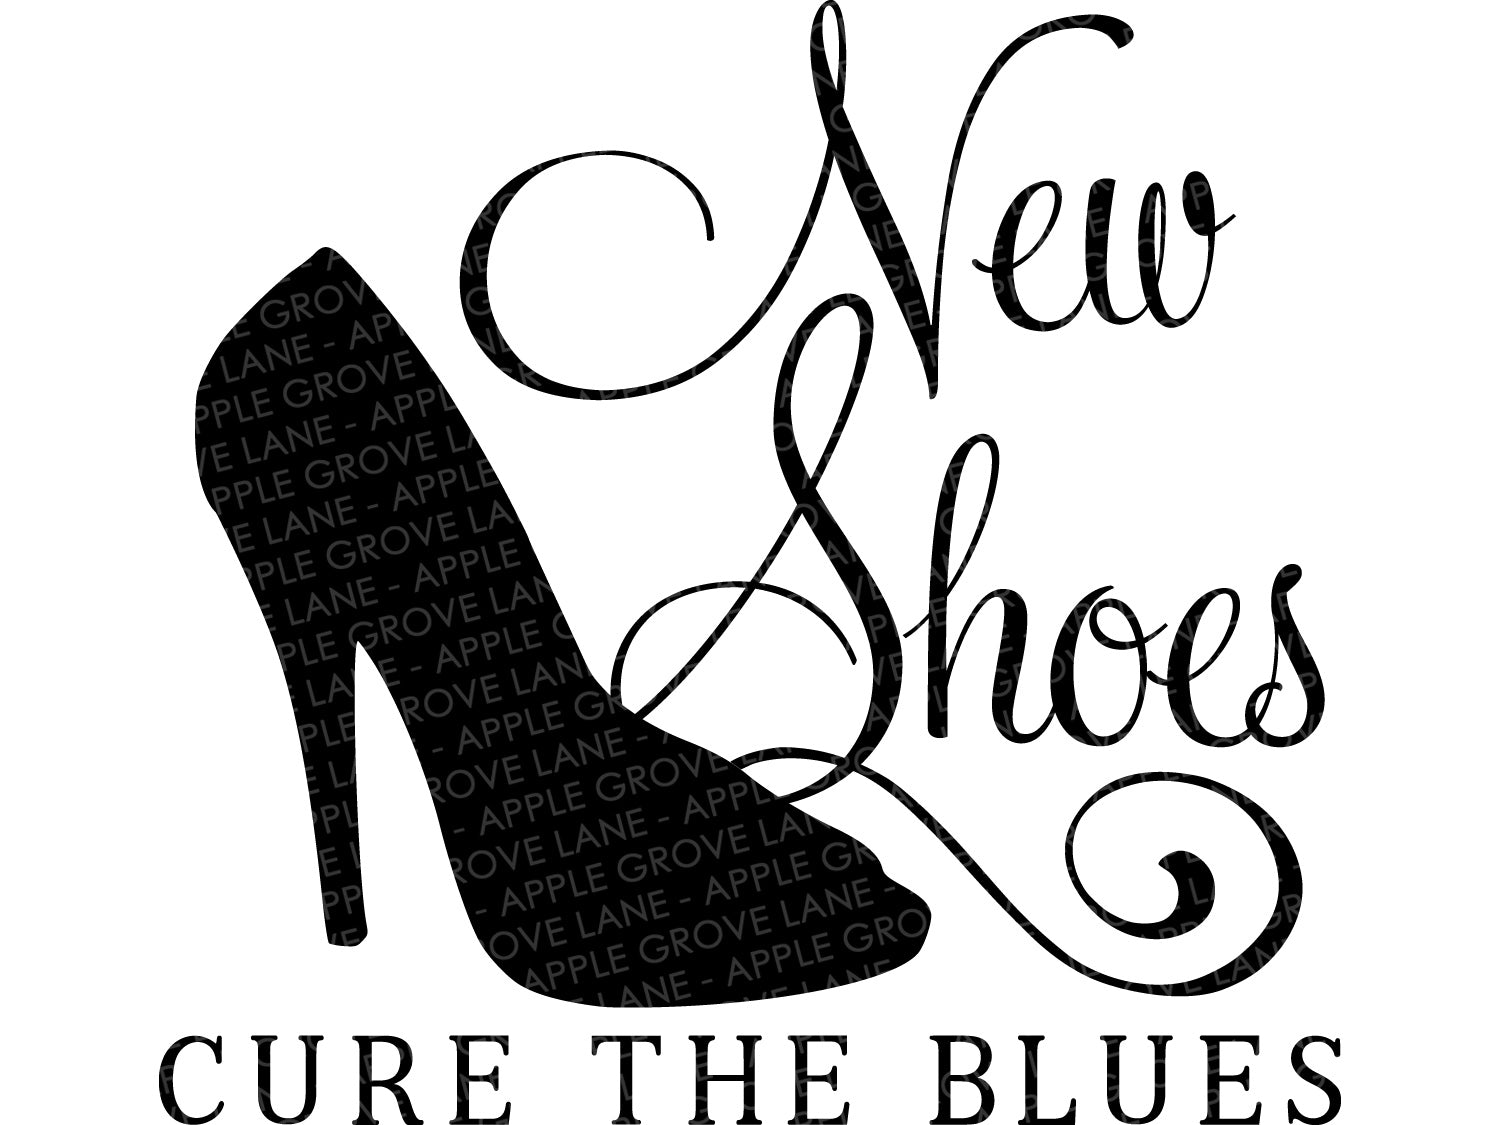 Women Svg File, Shoes Svg, Girl Shoes Svg, Shopping Svg, New Shoes Svg, Clothes Svg, Shoes Clipart, Funny Svg - Svg, Dxf, Eps, Png